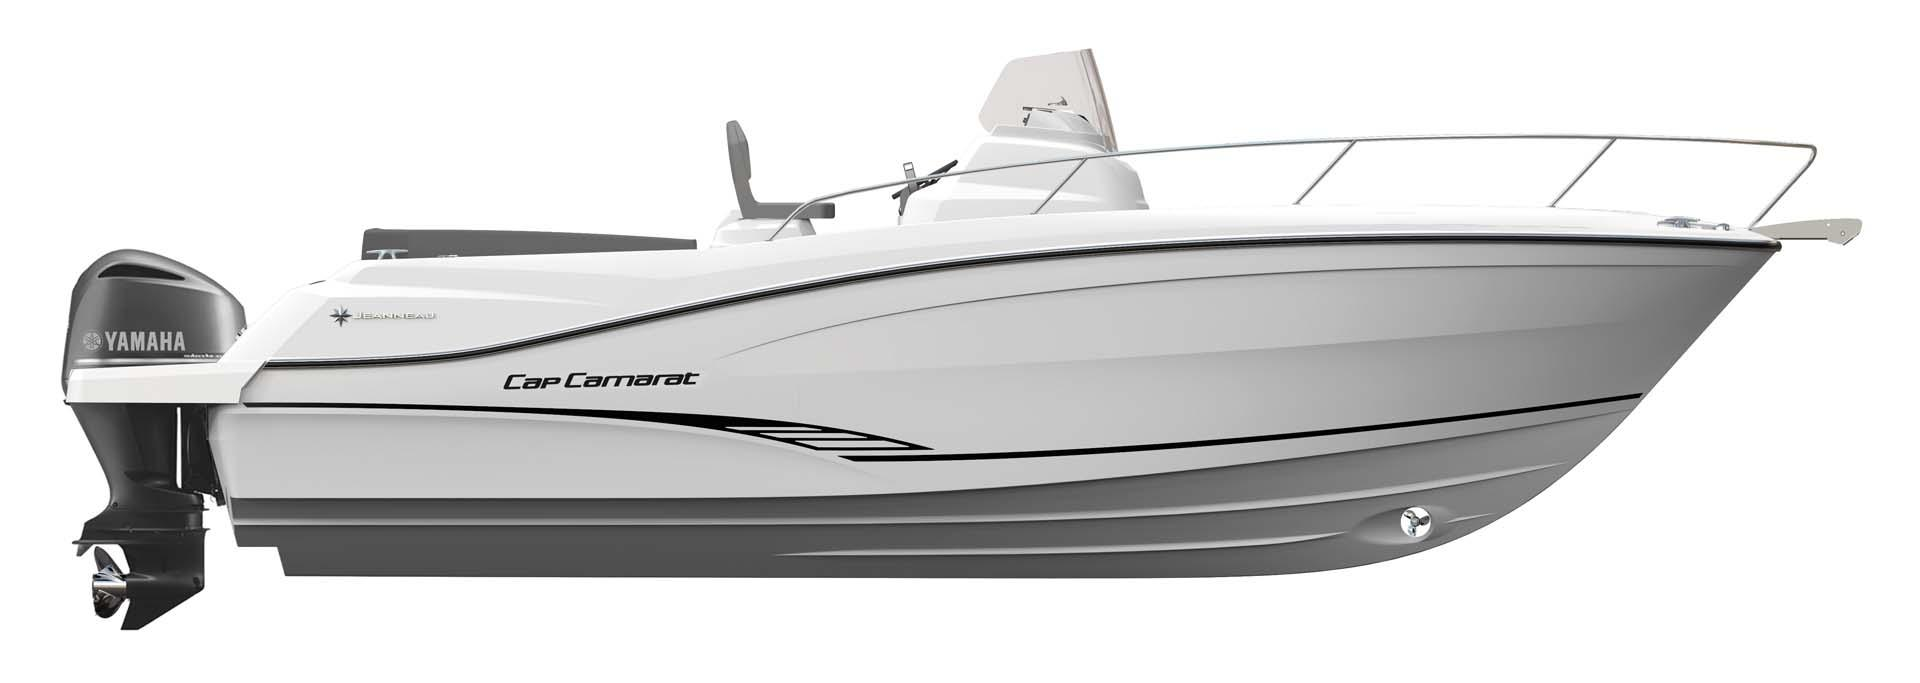 Cap Camarat 9.0 CC │ Cap Camarat Center Console of 9m │ Boat 舷外动力艇 Jeanneau 11159